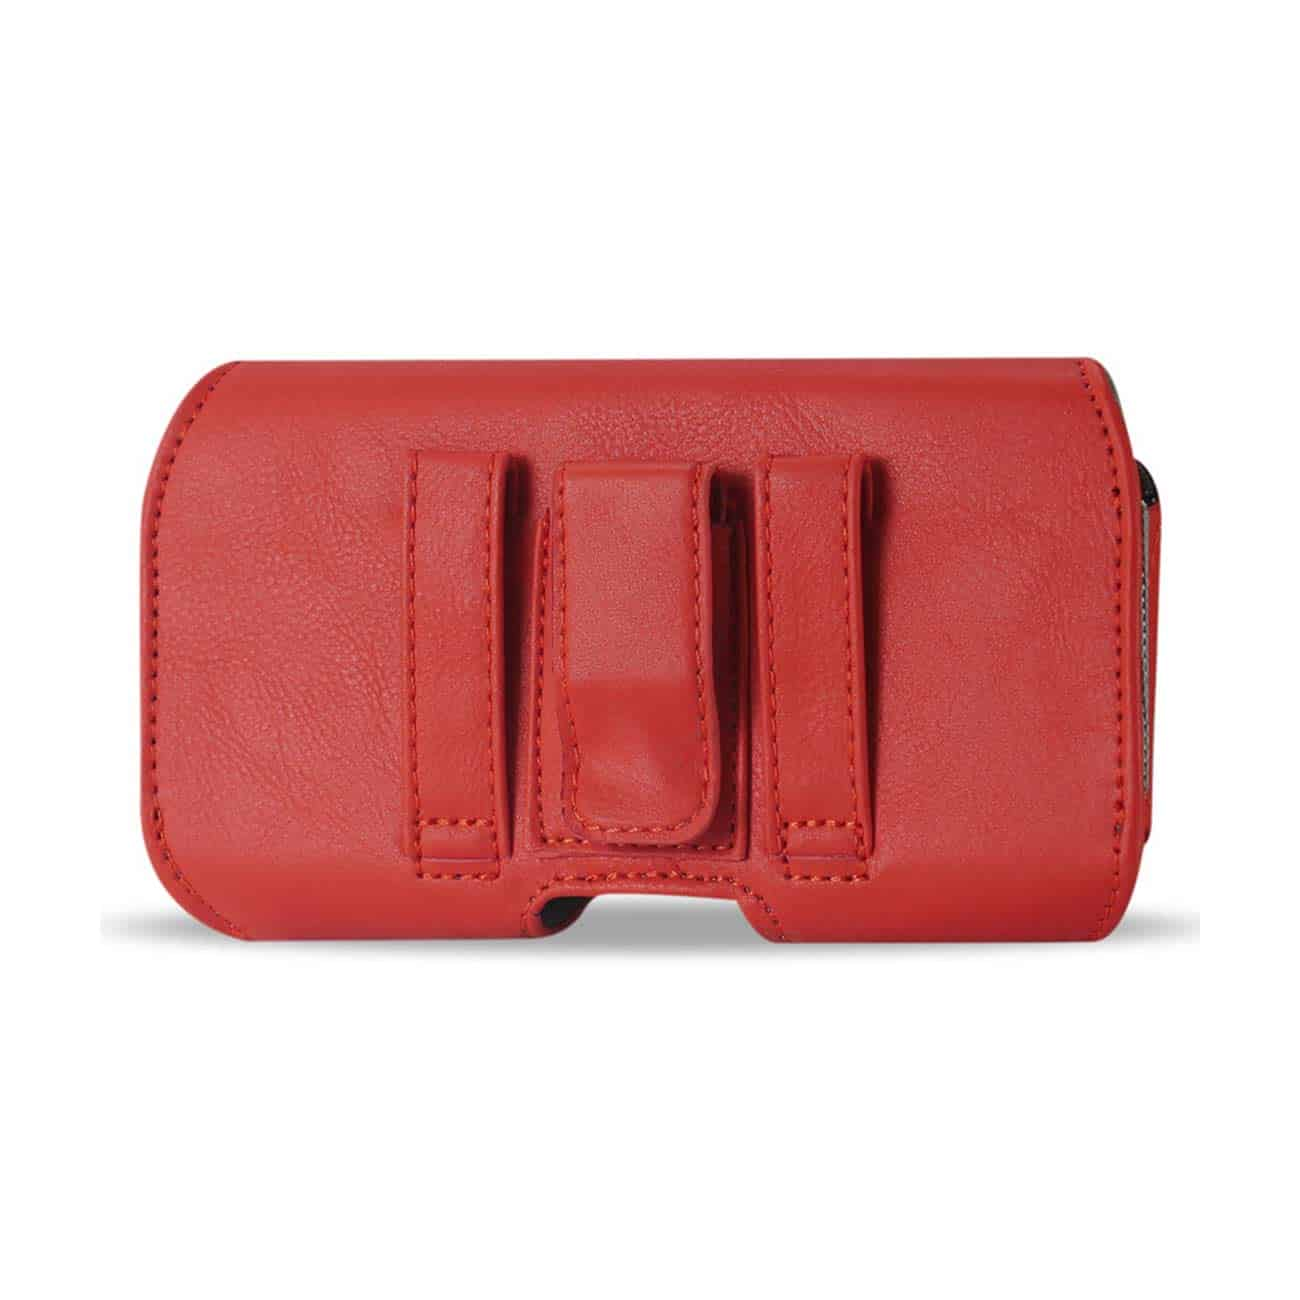 HORIZONTAL Z LID LEATHER POUCH SAMSUNG GALAXY S3/ I9300/ R53 X PLUS RED